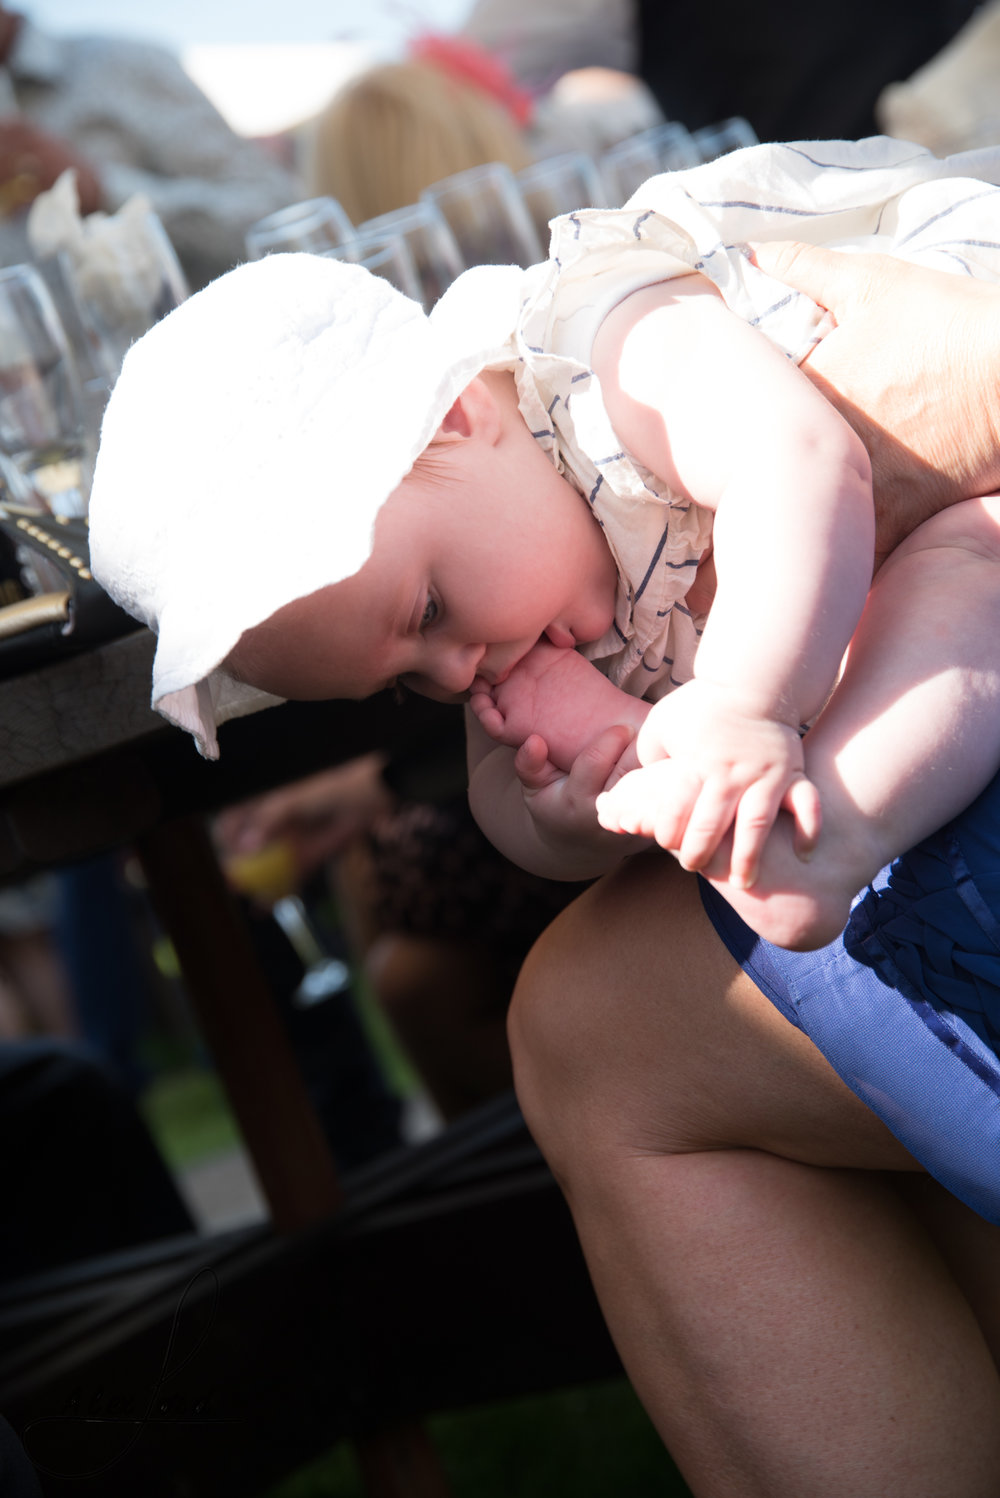 A baby wedding guest chews on her toes